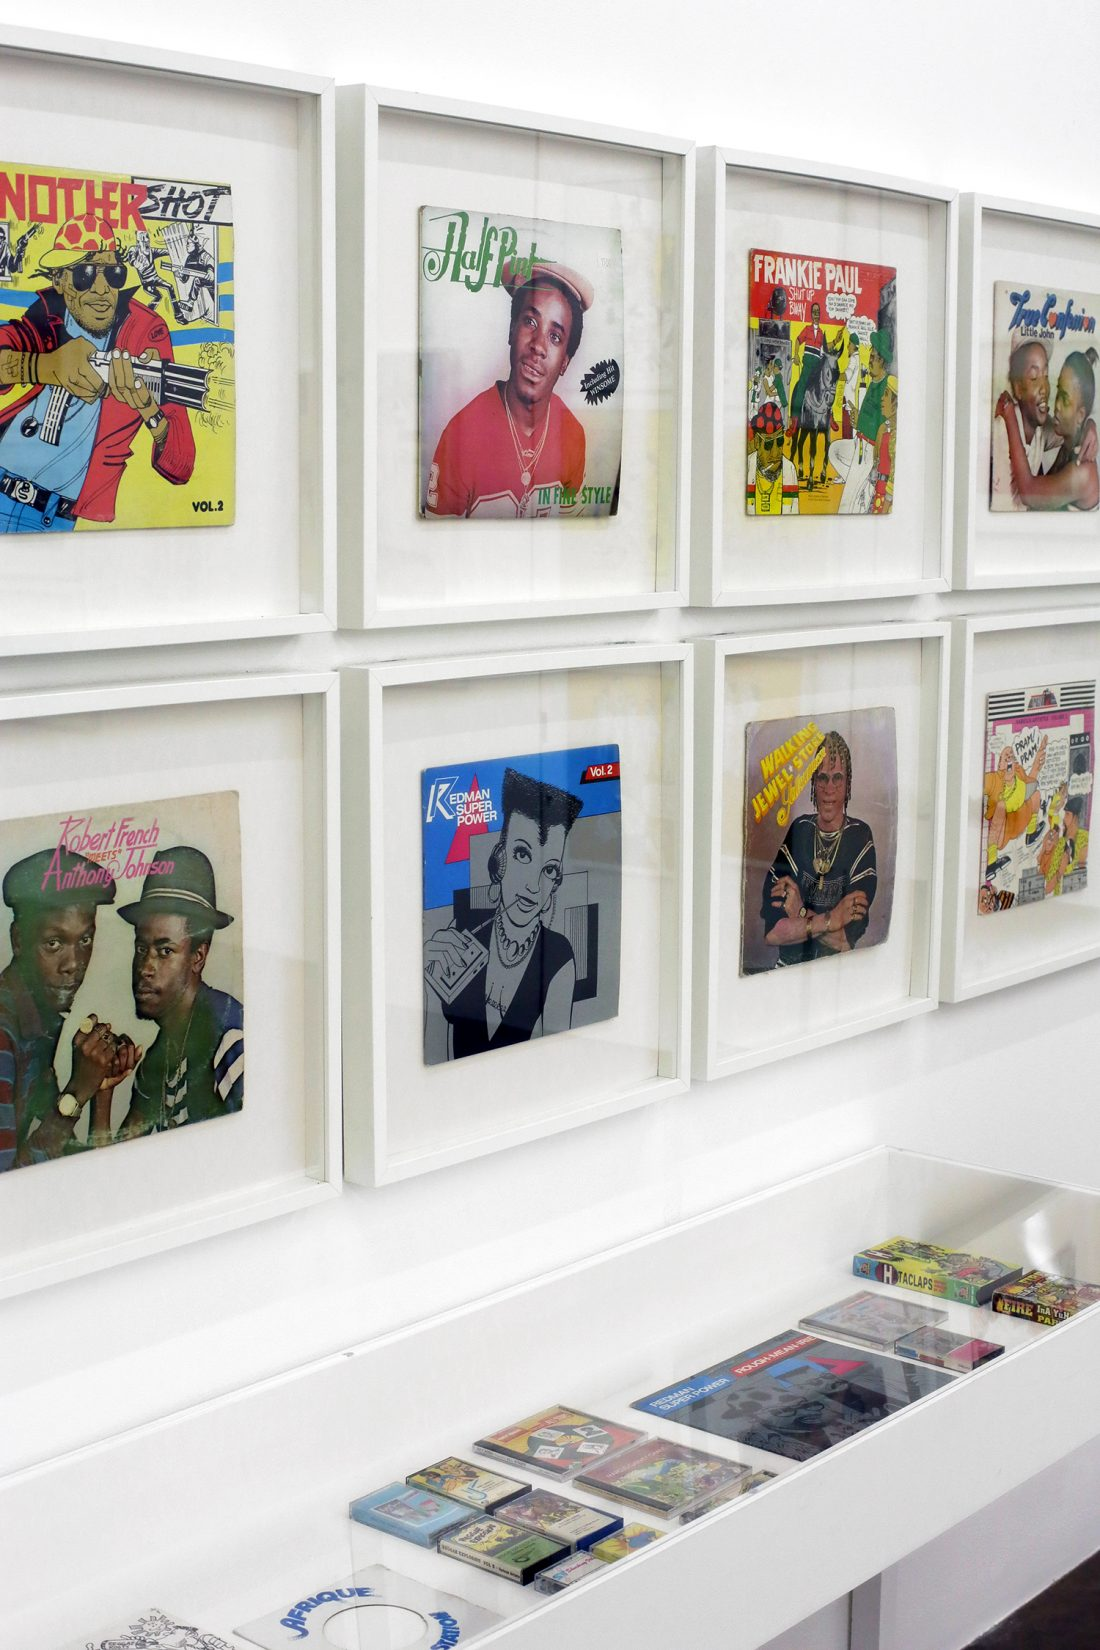 <p>Installation view of<em> In Fine Style: The Dancehall Art of Wilfred Limonious,</em> 2016. Photo: Simon Parris</p>